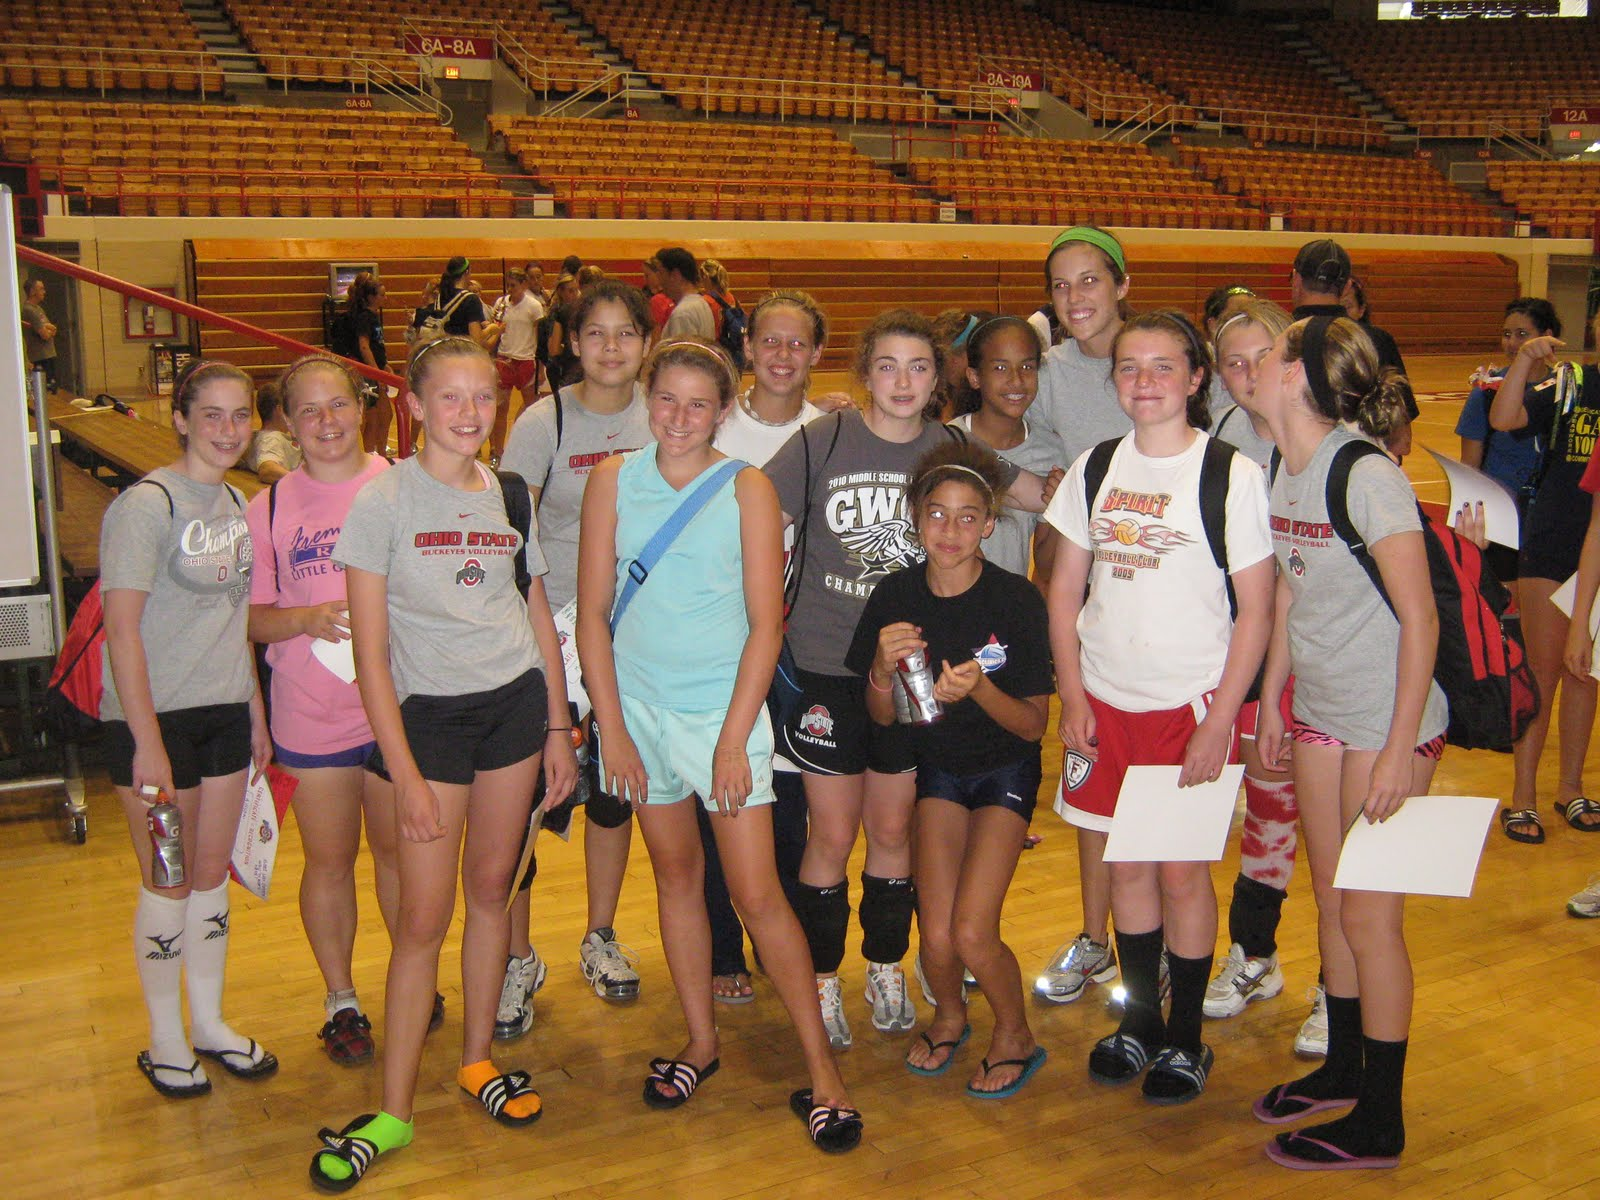 volleyball camp Tom black volleyball camp, uga volleyball, georgia volleyball camp, georgia camps, georgia athletics camp, athens camps.